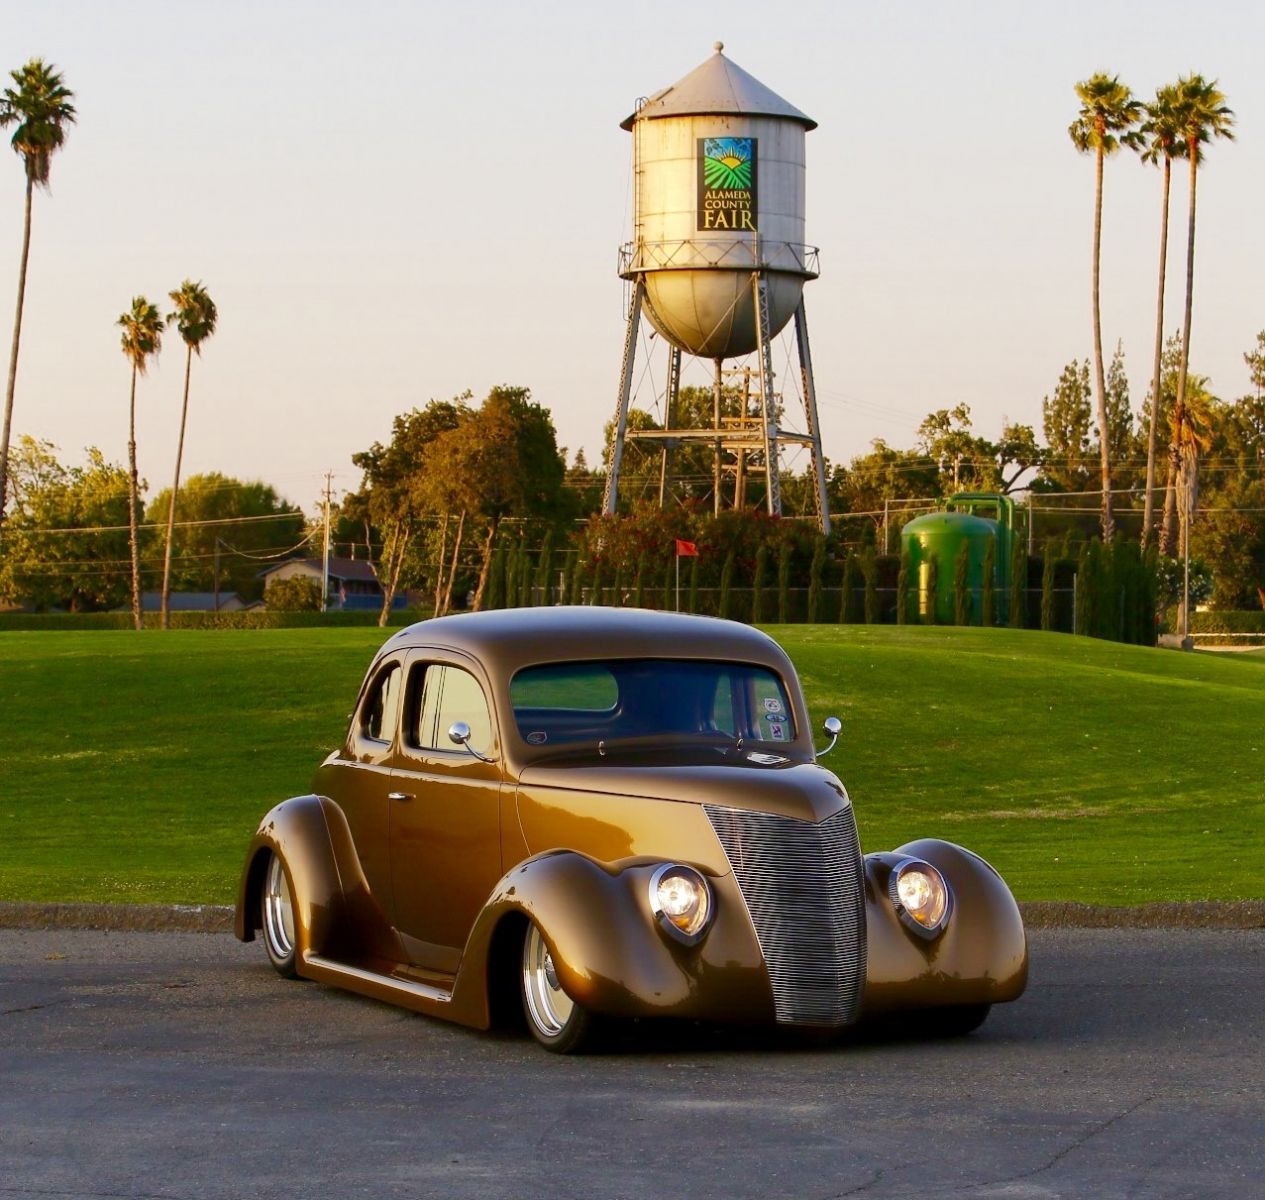 Dan Wathor S 1937 Ford Wins Most Beautiful Street Rod